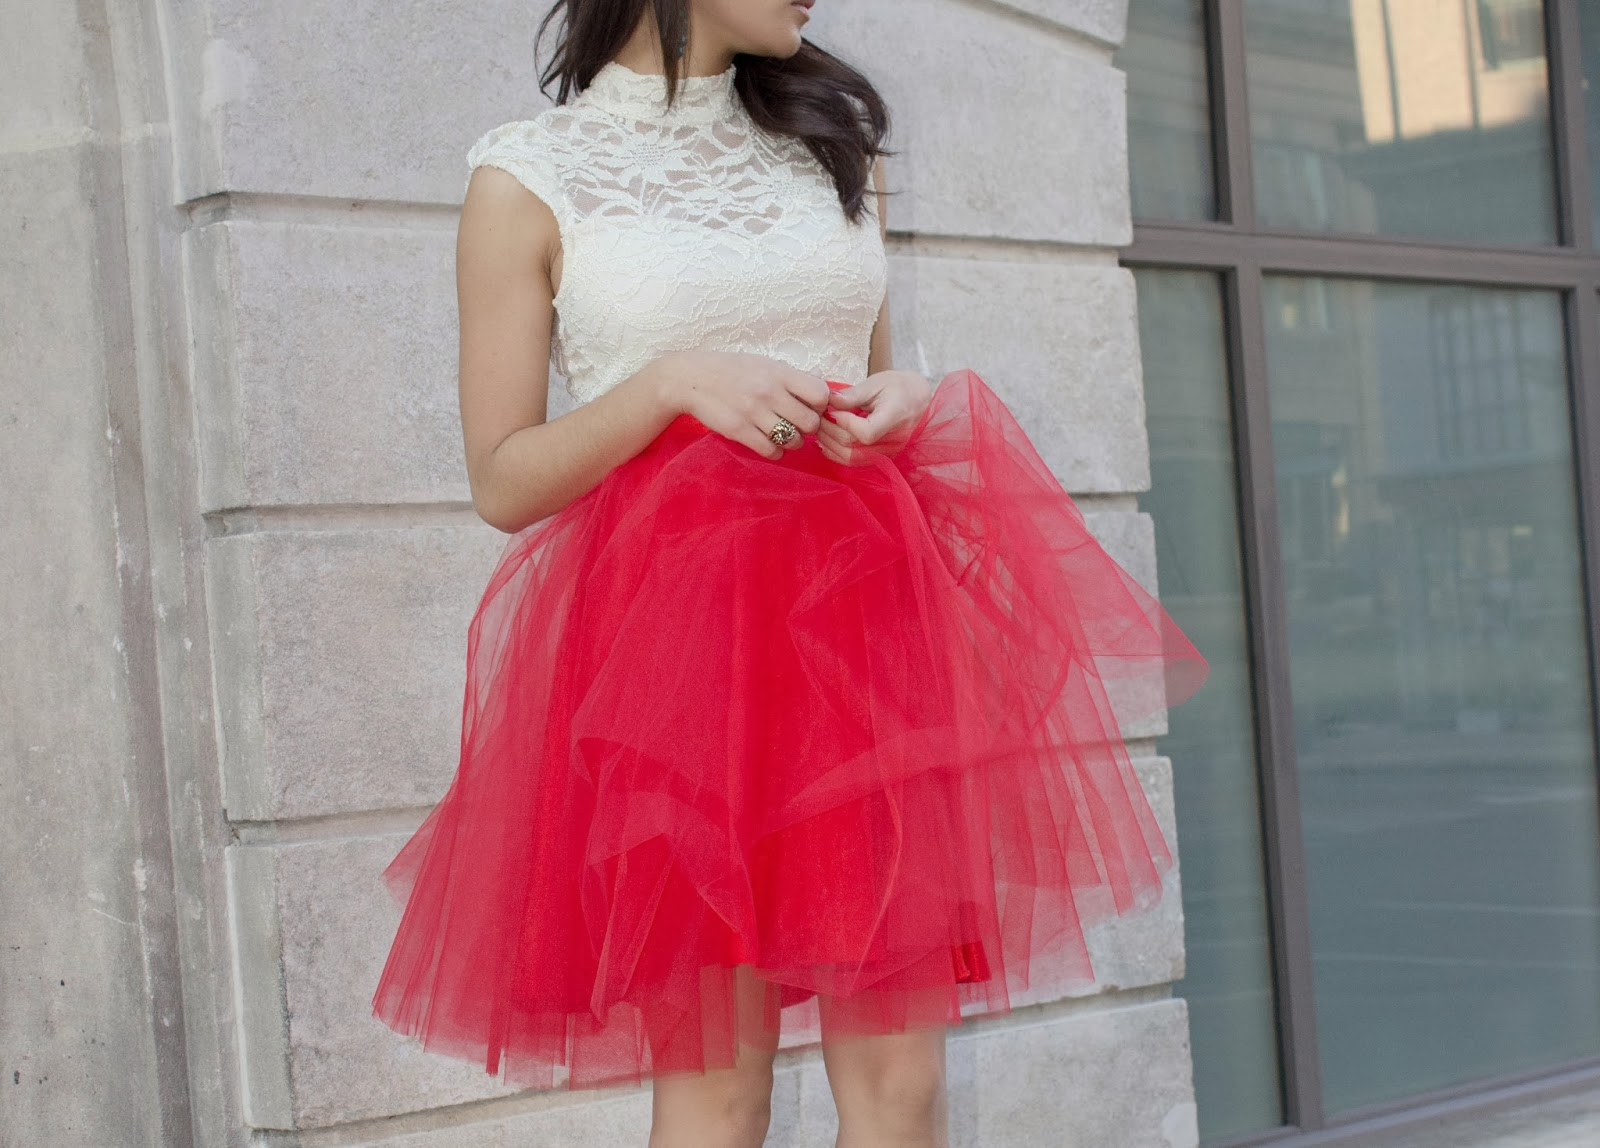 Tulle skirts, tutu skirts, fashion blogger, melba nguyen, tulle skirt pairing, fendi purse , styling tulle skirts